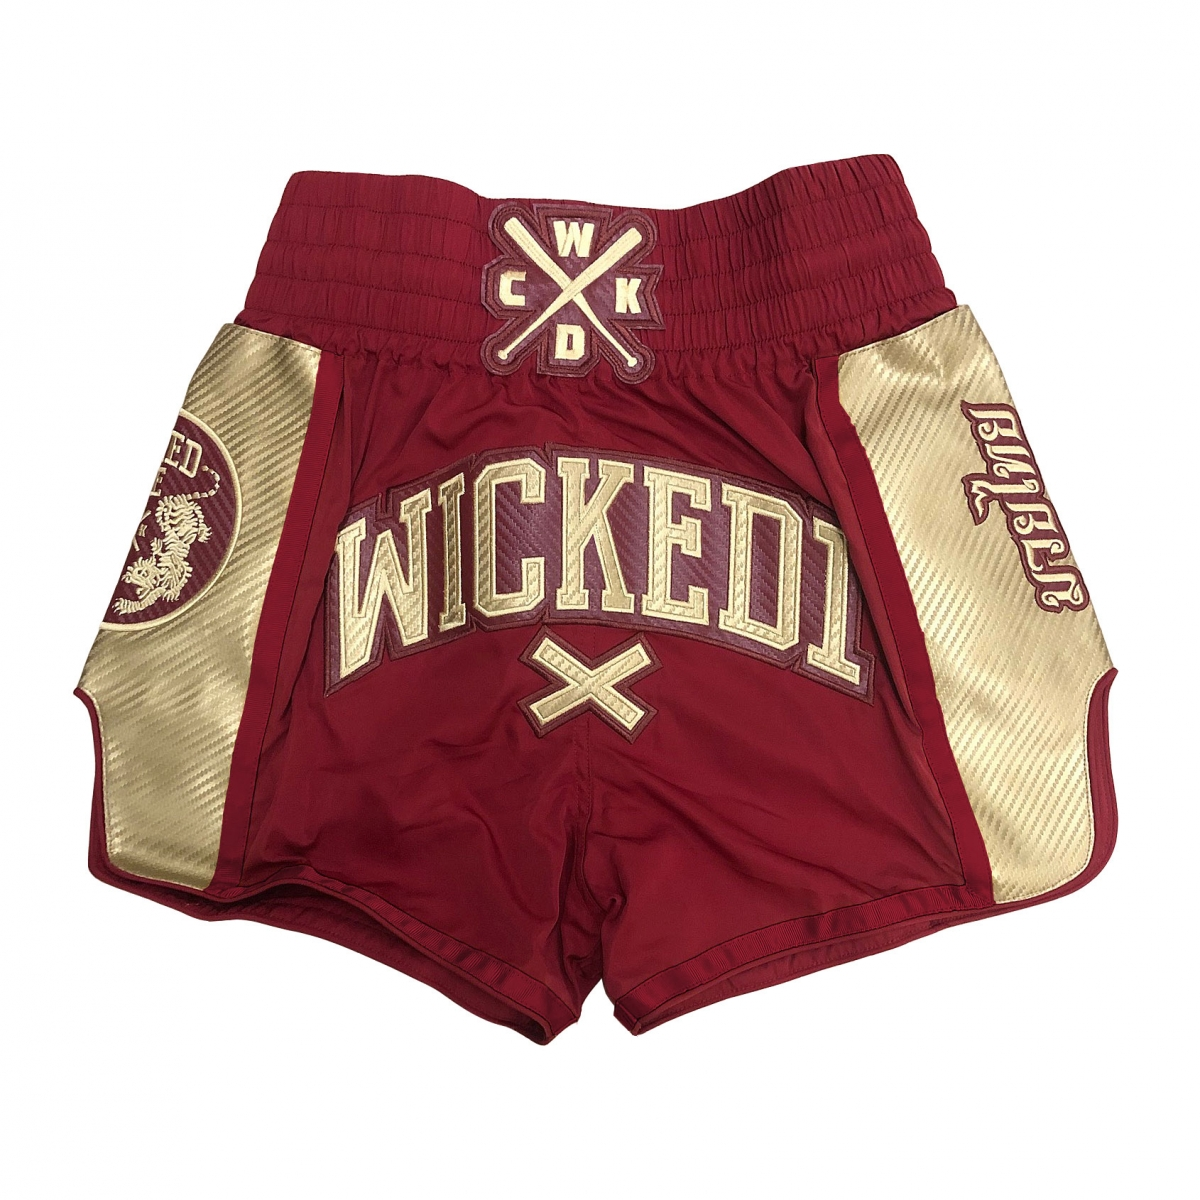 Short Wicked one Shinning Bordeaux